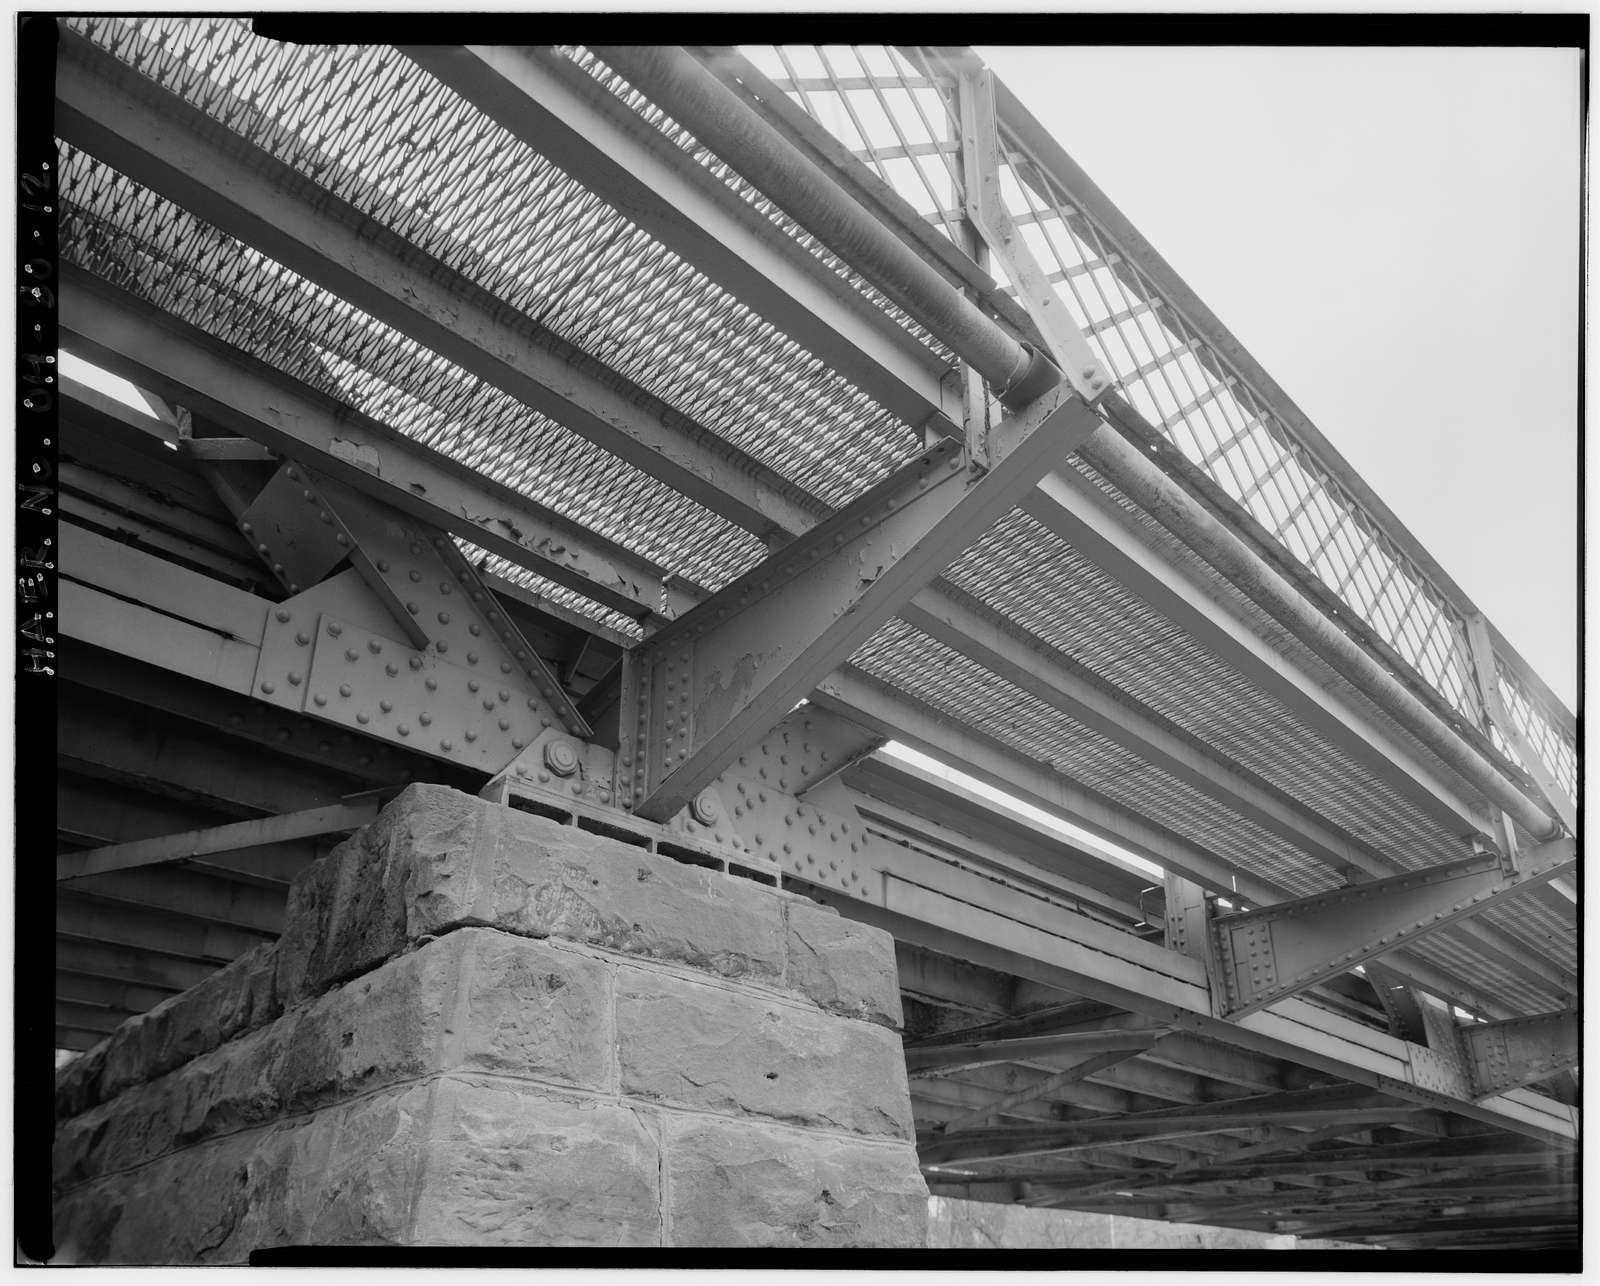 Cherry Street Bridge, Spanning Tuscarawas River, Canal Fulton, Stark County, OH